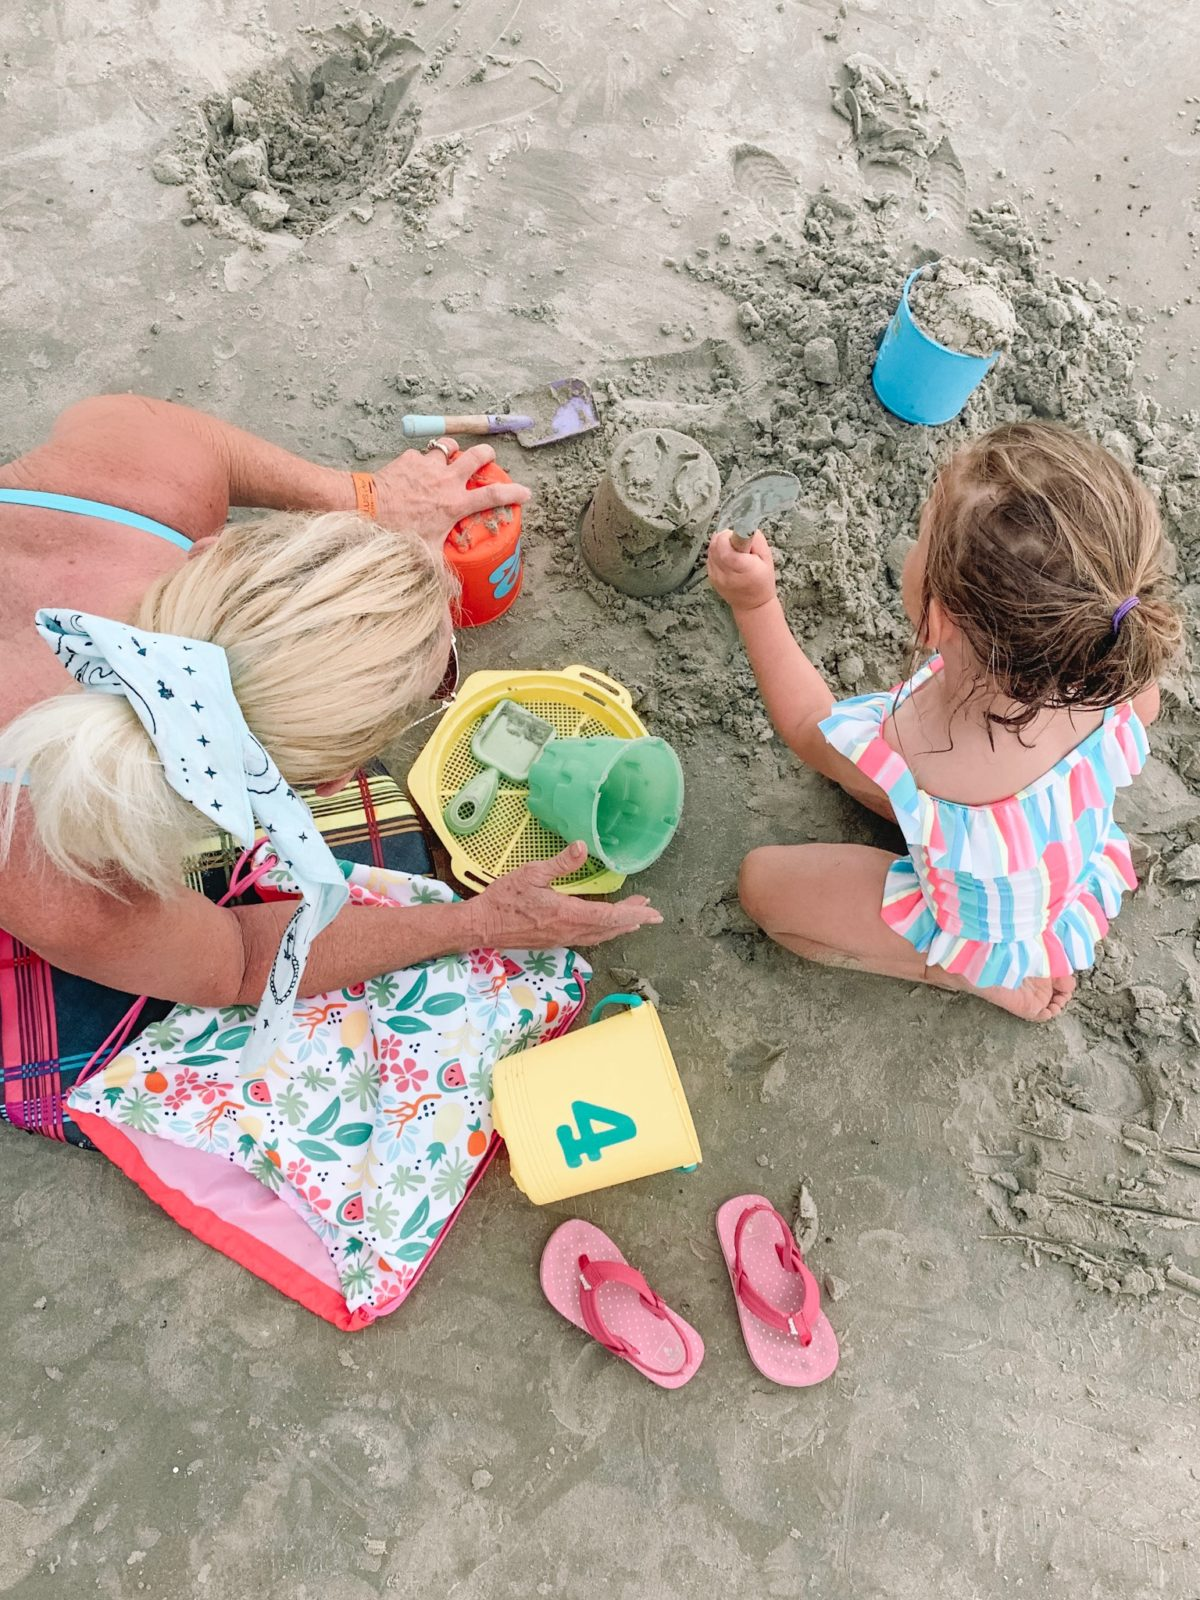 48 Hours in Galveston - Grandma and Granddaughter playing in the sand